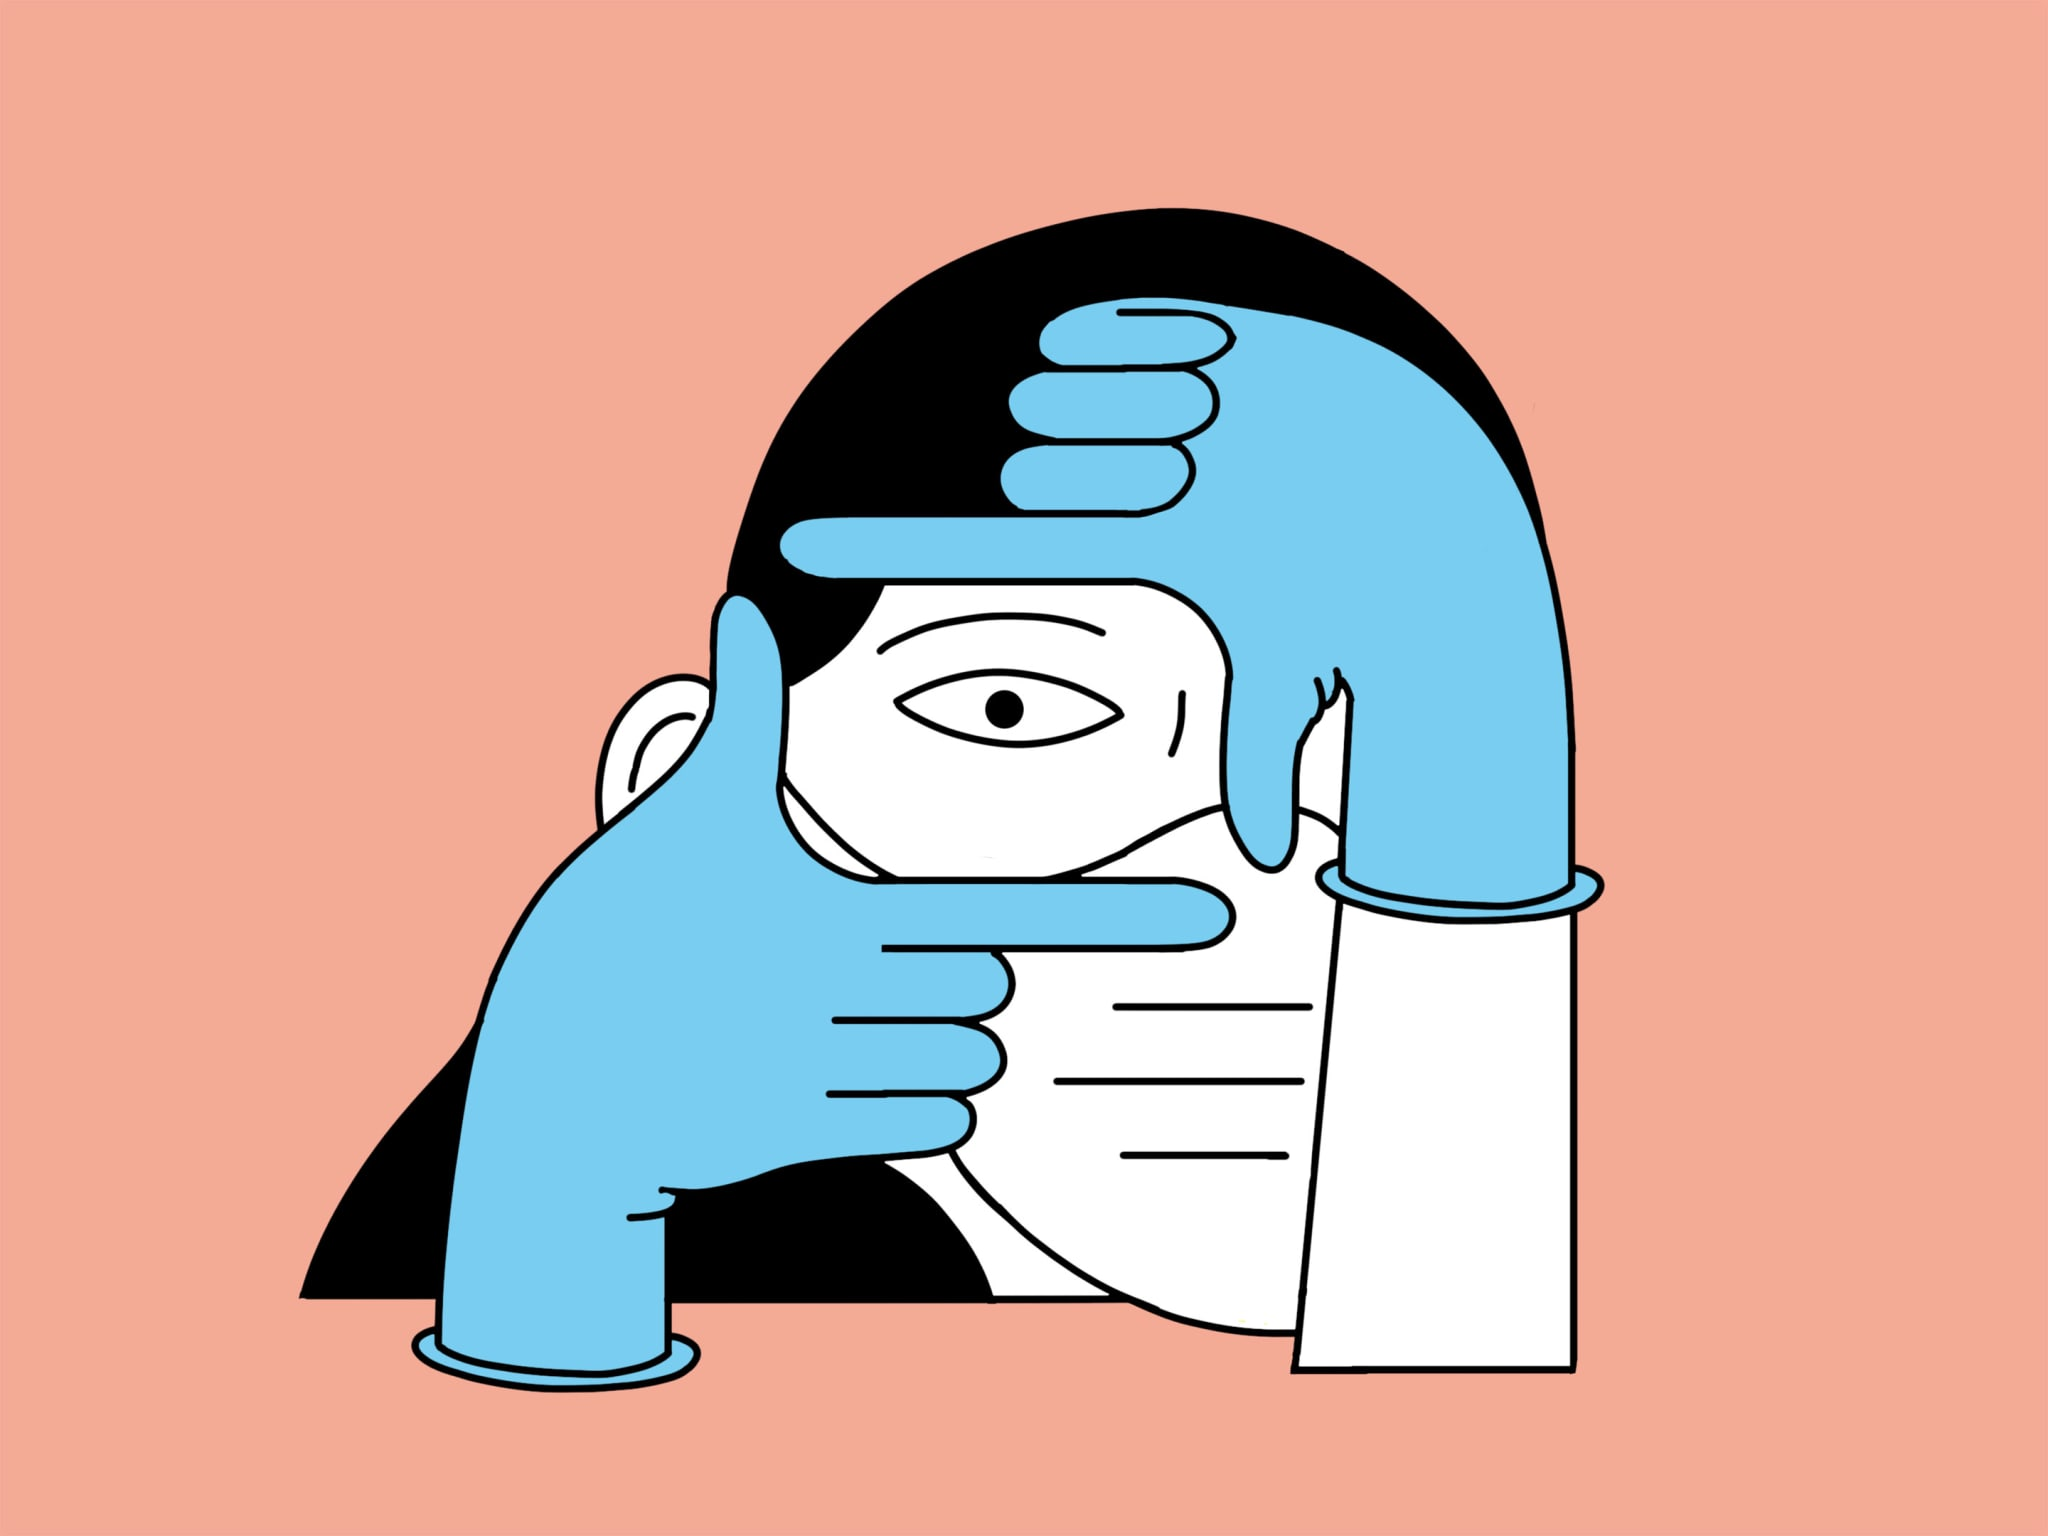 A colourful abstract illustration of a person holding their fingers in a way that frames their eye.